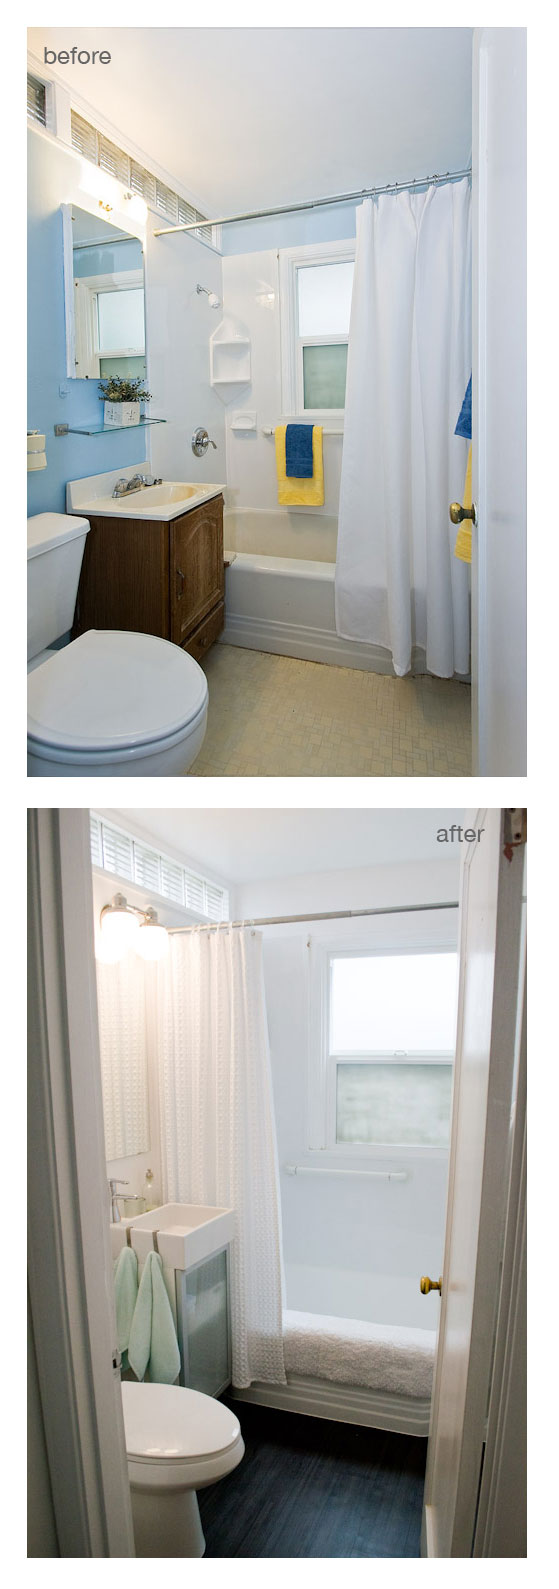 Bathroom-Before-and-After-Photos